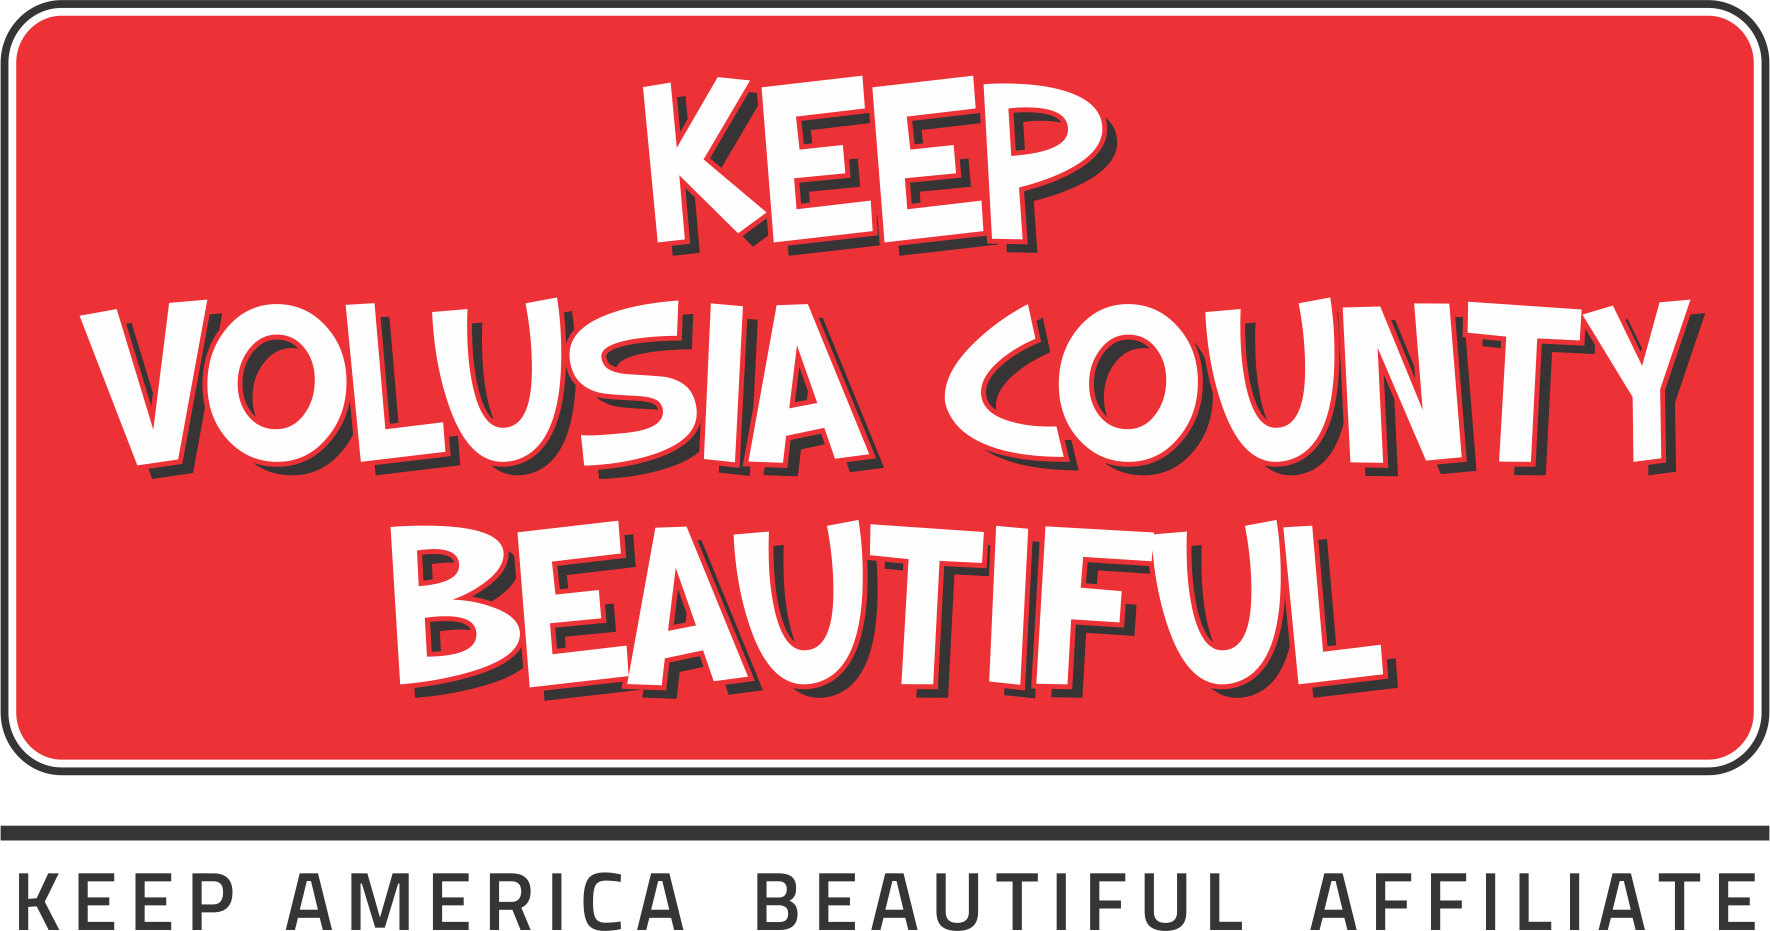 Keep Volusia County Beautiful Image